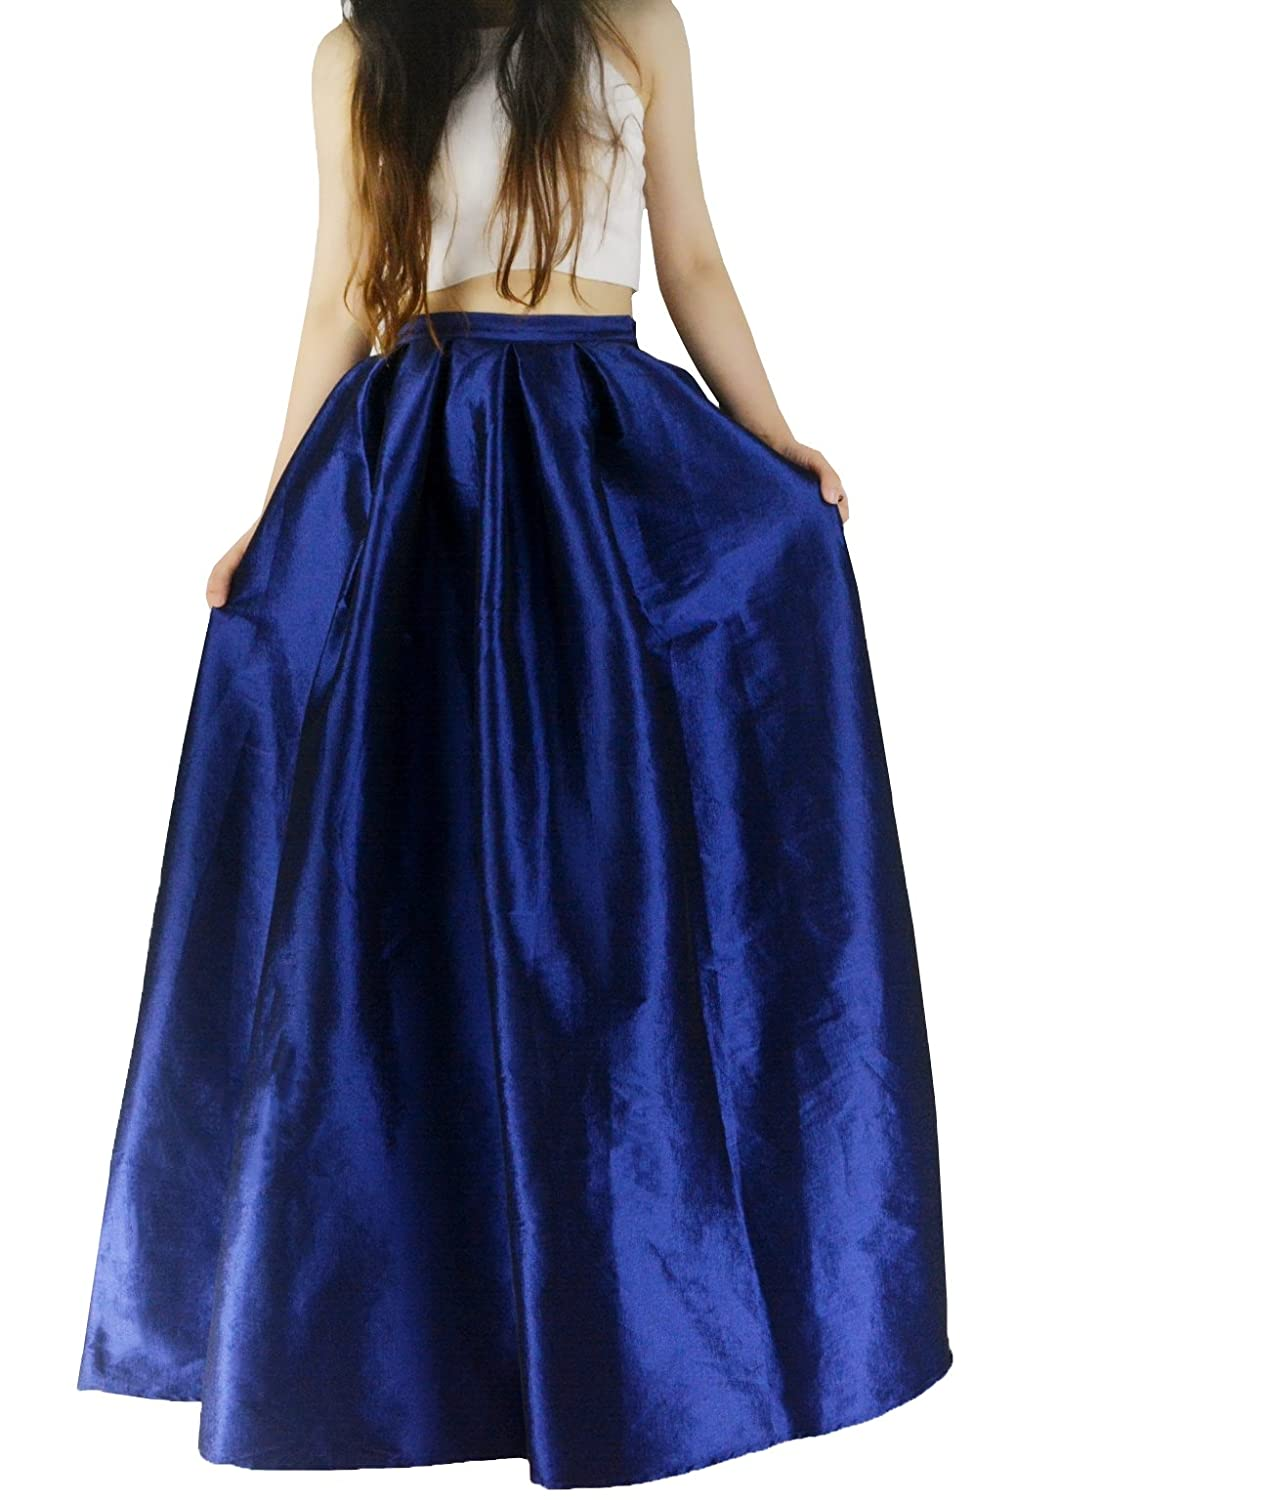 YSJ Women's A-Line Pleated Maxi Skirts Party Swing Skirt w/ Pockets (8, Royal )